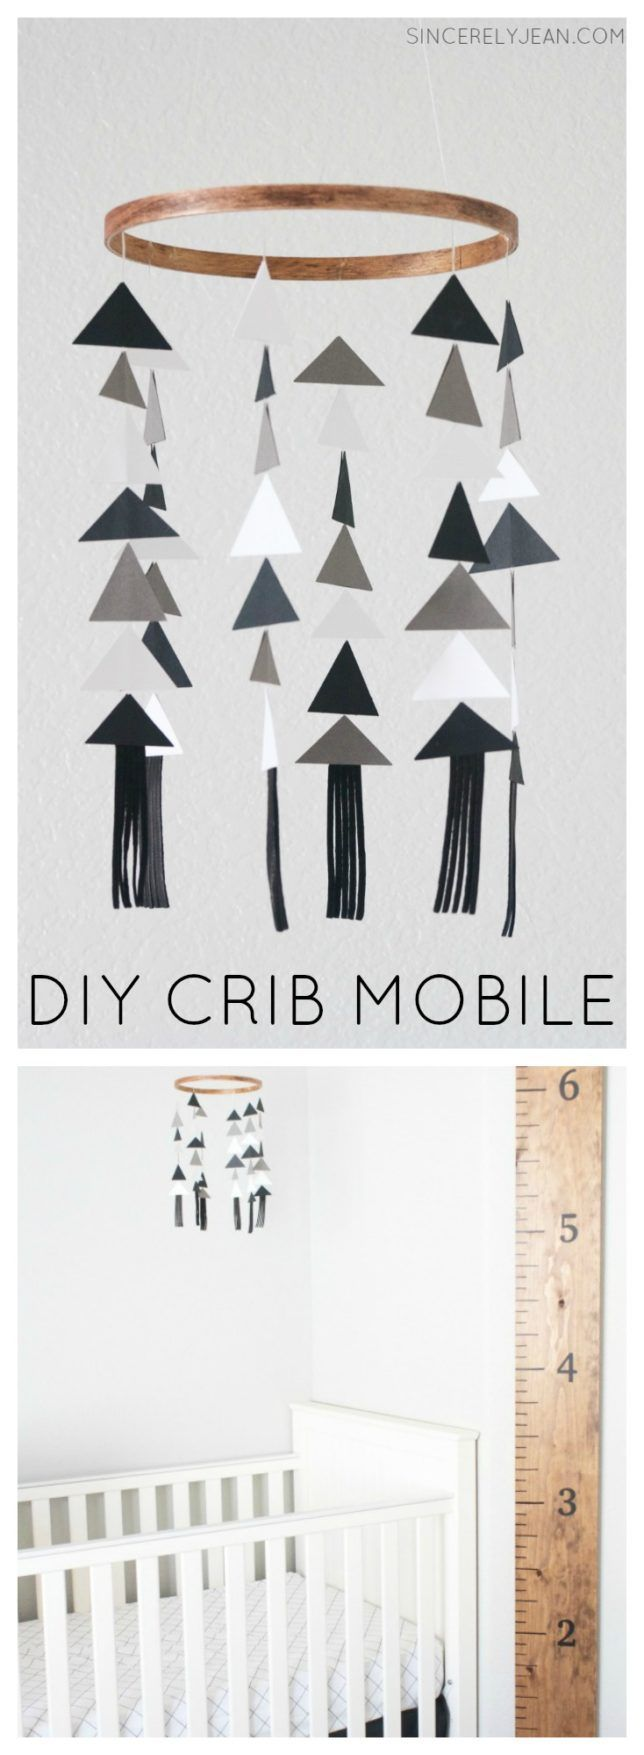 DIY Crib Mobile - Learn how to make this adorable triangle crib mobile with our easy tutorial! | www.SincerelyJean.com